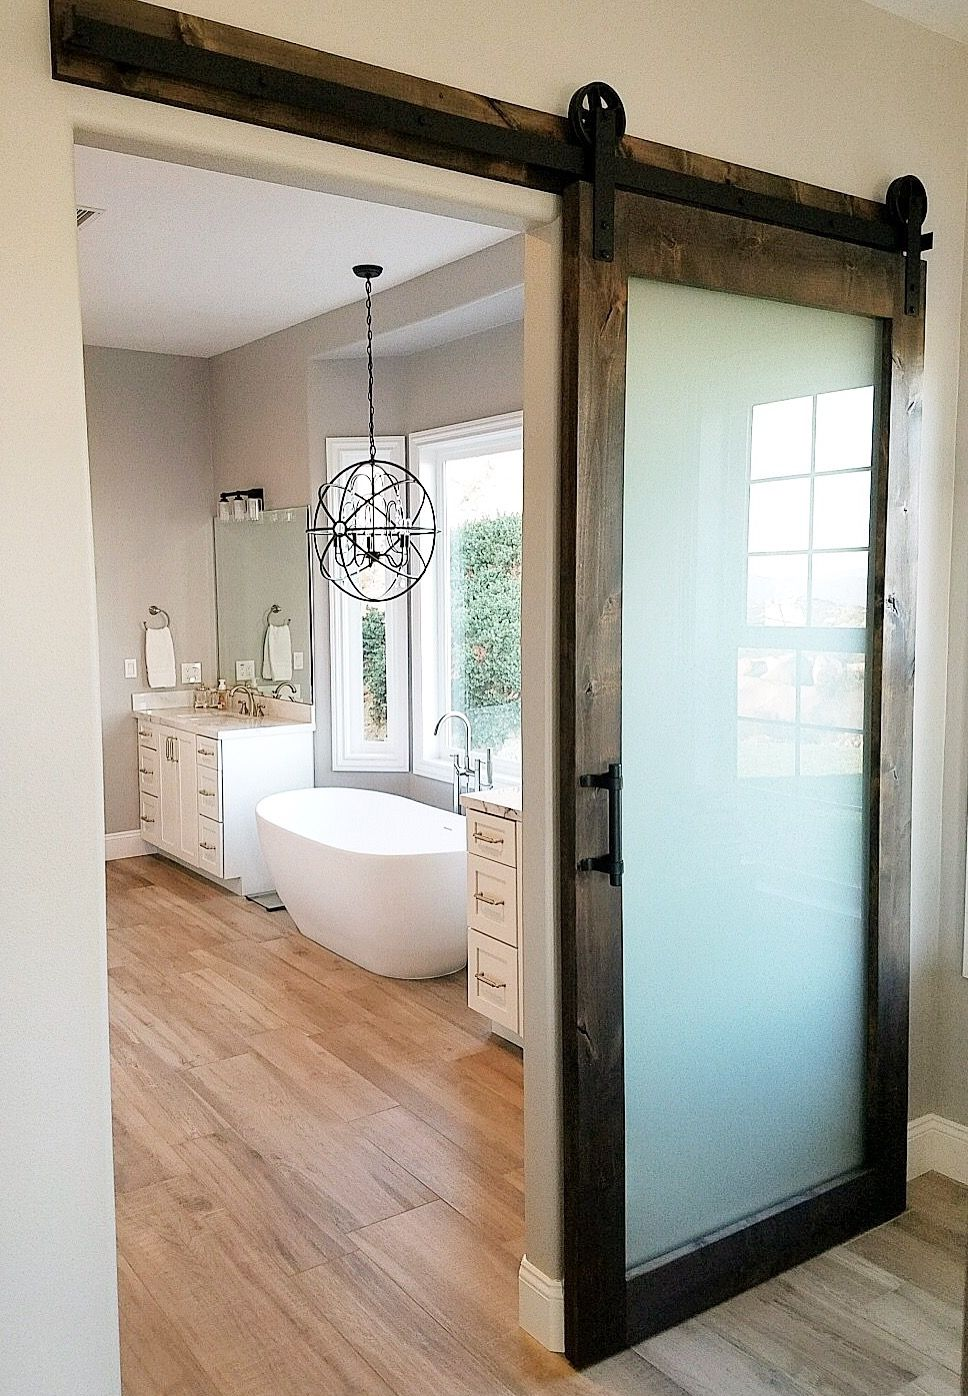 Frosted Glass Knotty Alder Barn Door With Hardware For A